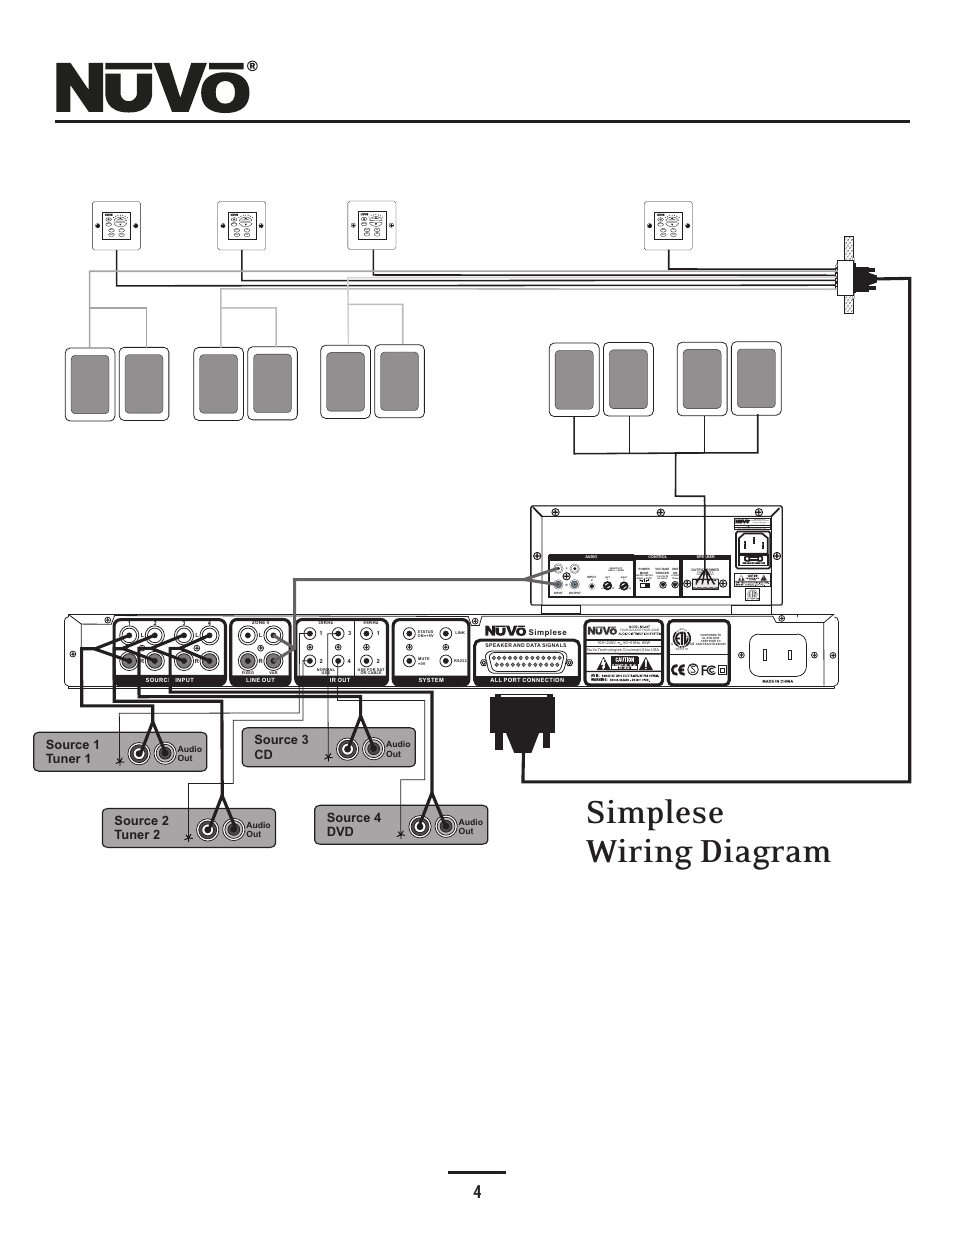 nuvo simplese nv a4ds uk page7 wiring diagram, simplese wiring diagram, use only with 250v fuse